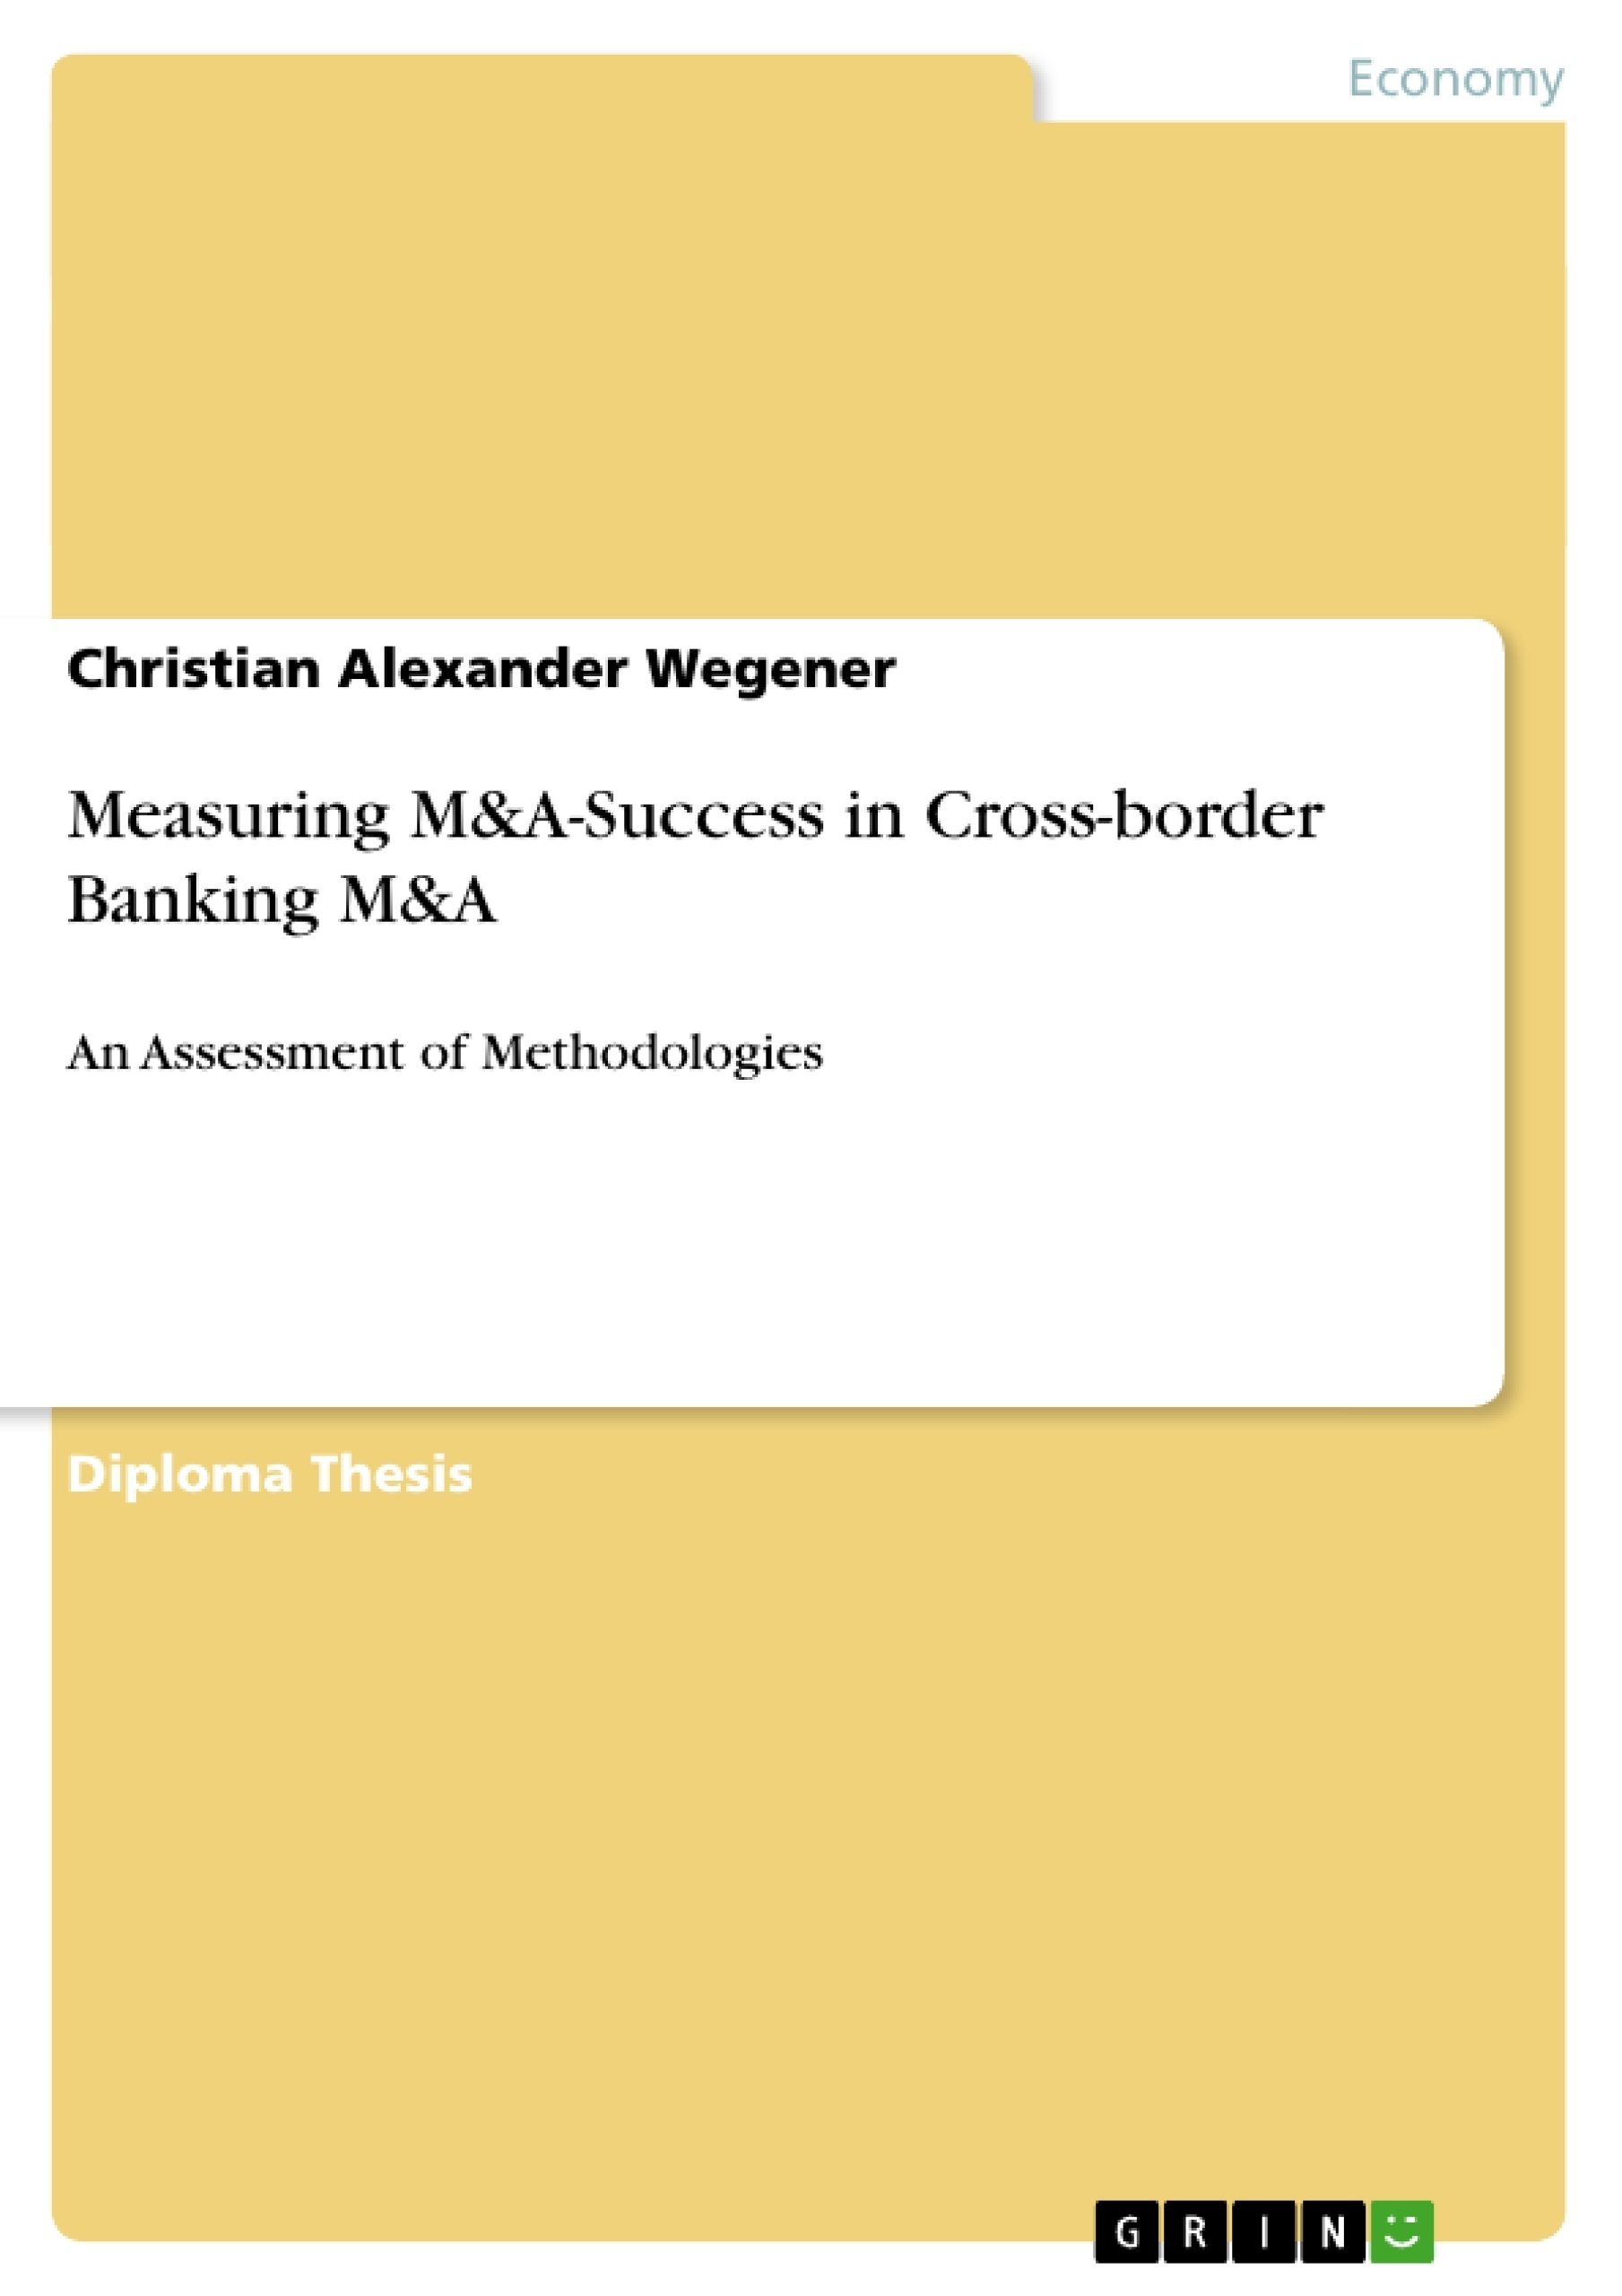 Title: Measuring M&A-Success in Cross-border Banking M&A